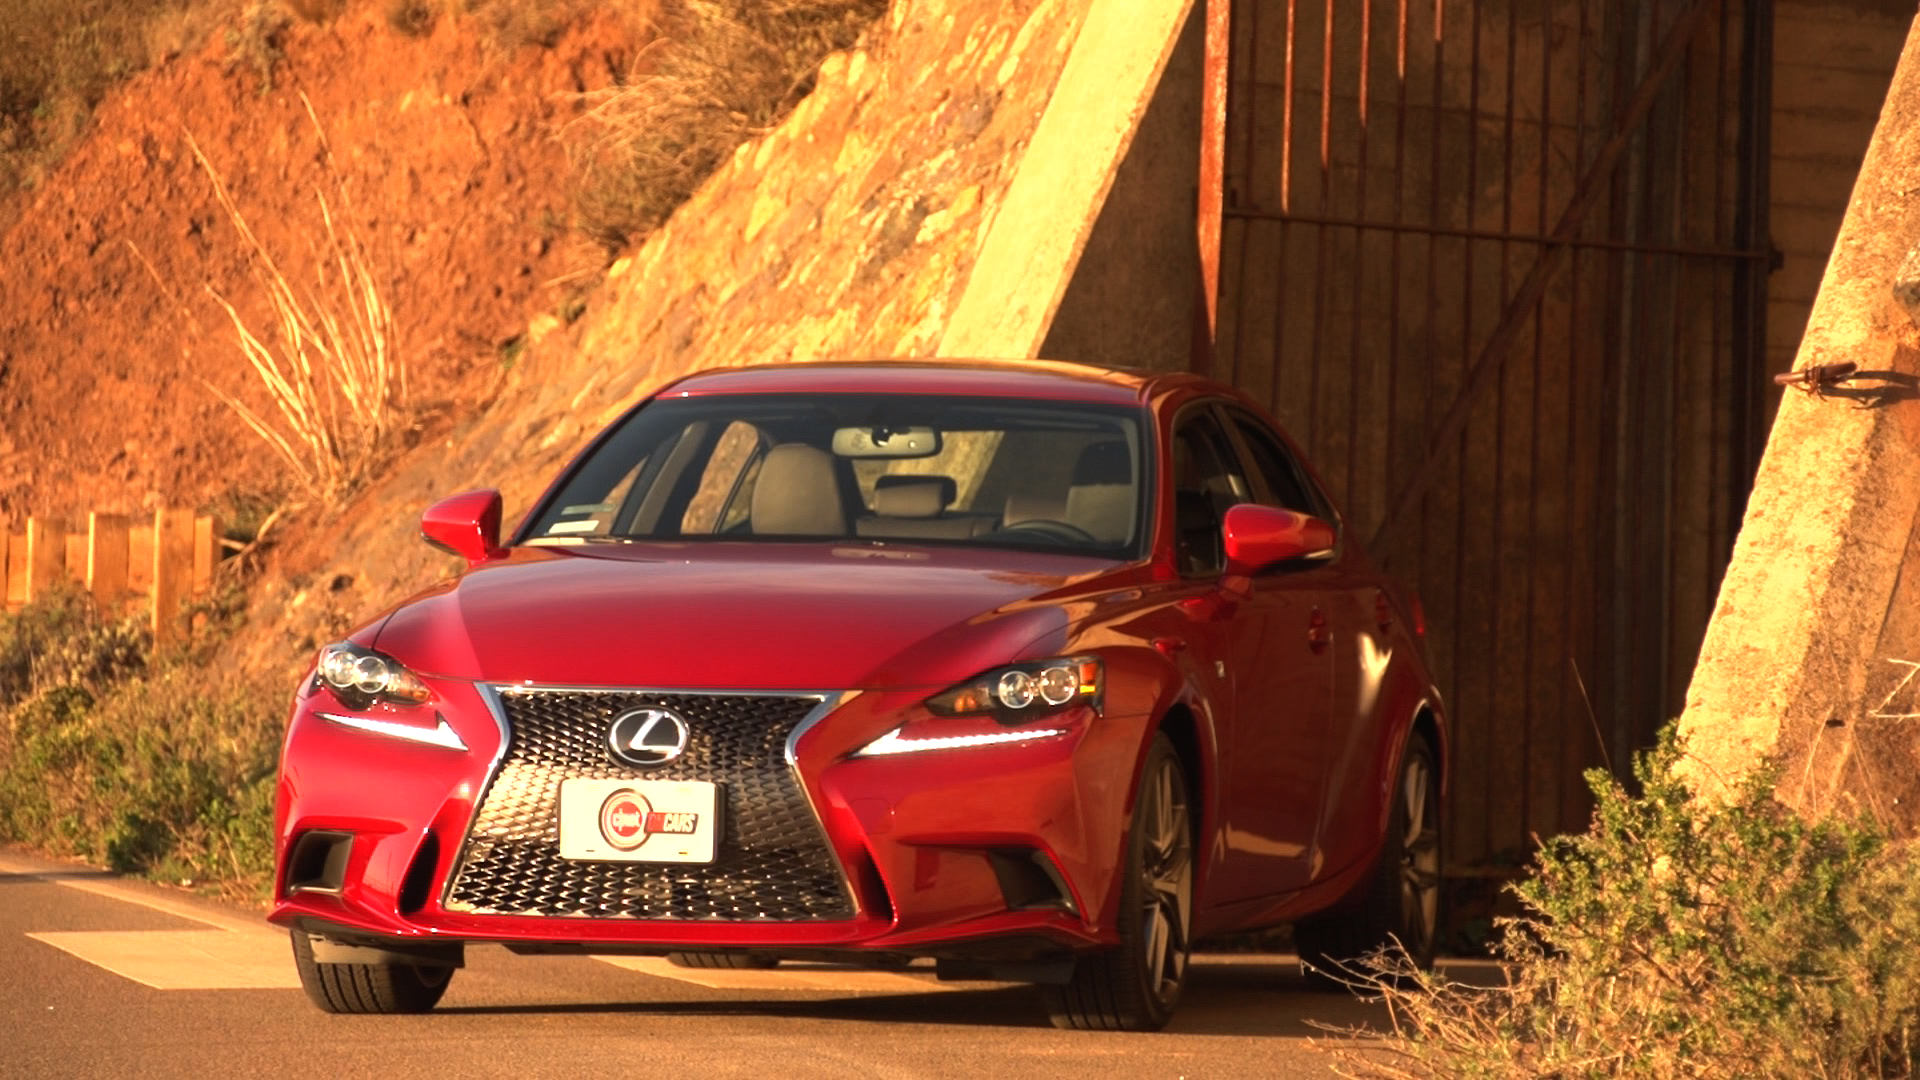 Video: Lexus IS350 F Sport: Does it measure up to the Germans -- or even need to? (CNET On Cars, Episode 29)